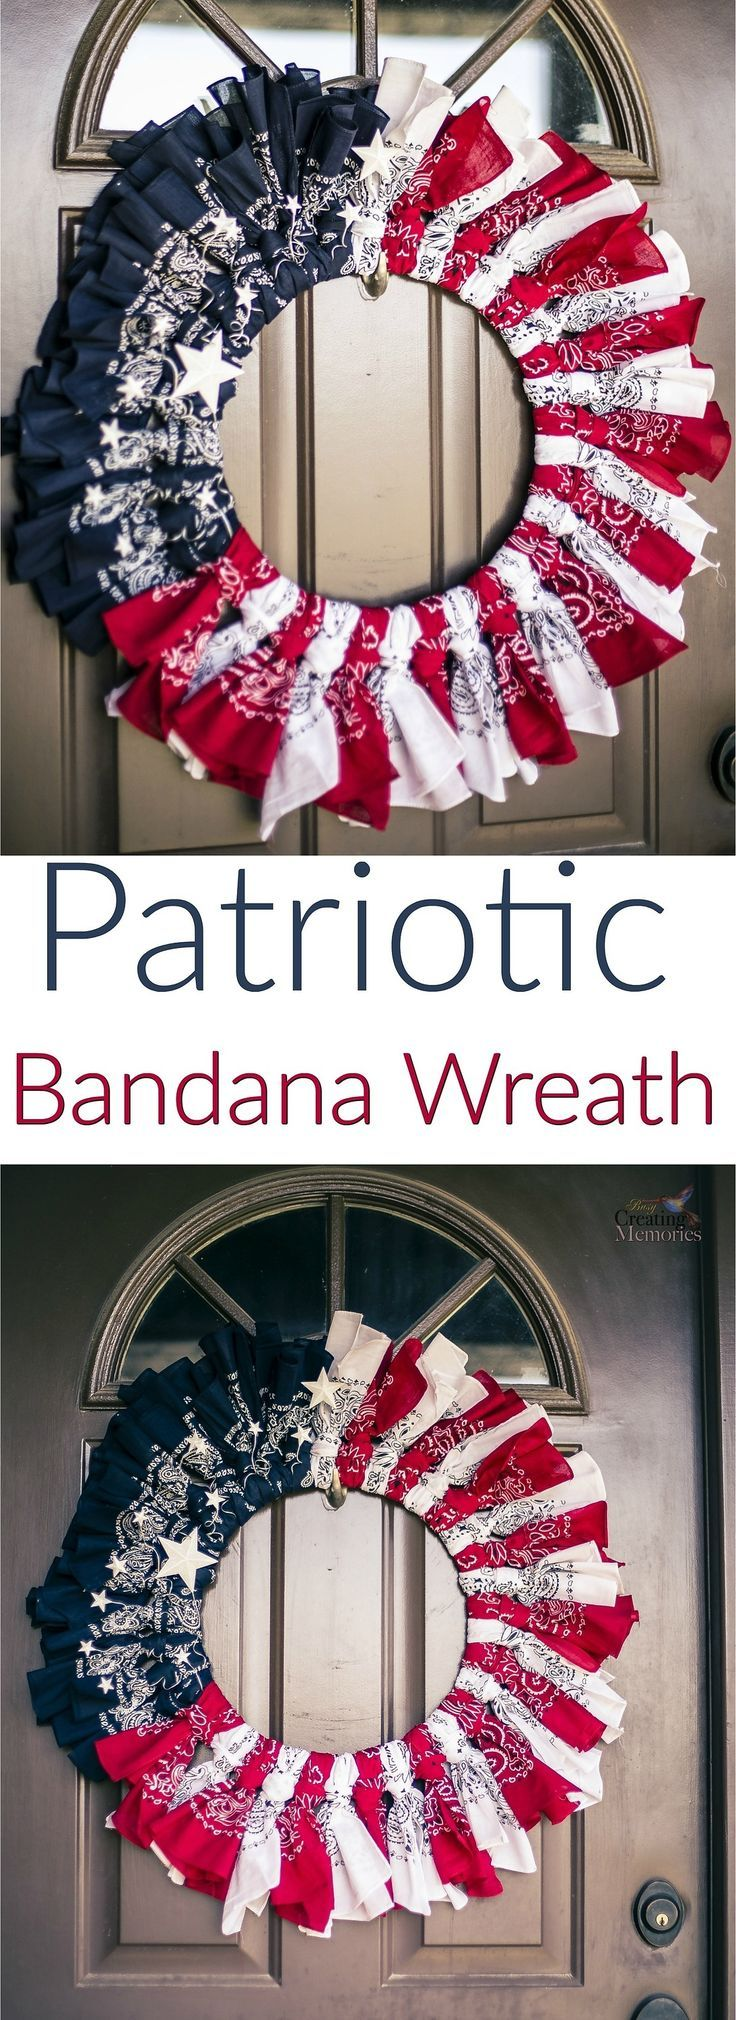 This Stunning and Easy DIY Patriotic Bandana Wreath for the front door is perfect for any patriotic holiday and is easy to create in less than an hour (minus drying time). You can show your American Pride or Military support on Memorial Day, 4th of July, Veterans Day or Labor Day! via /2creatememories/